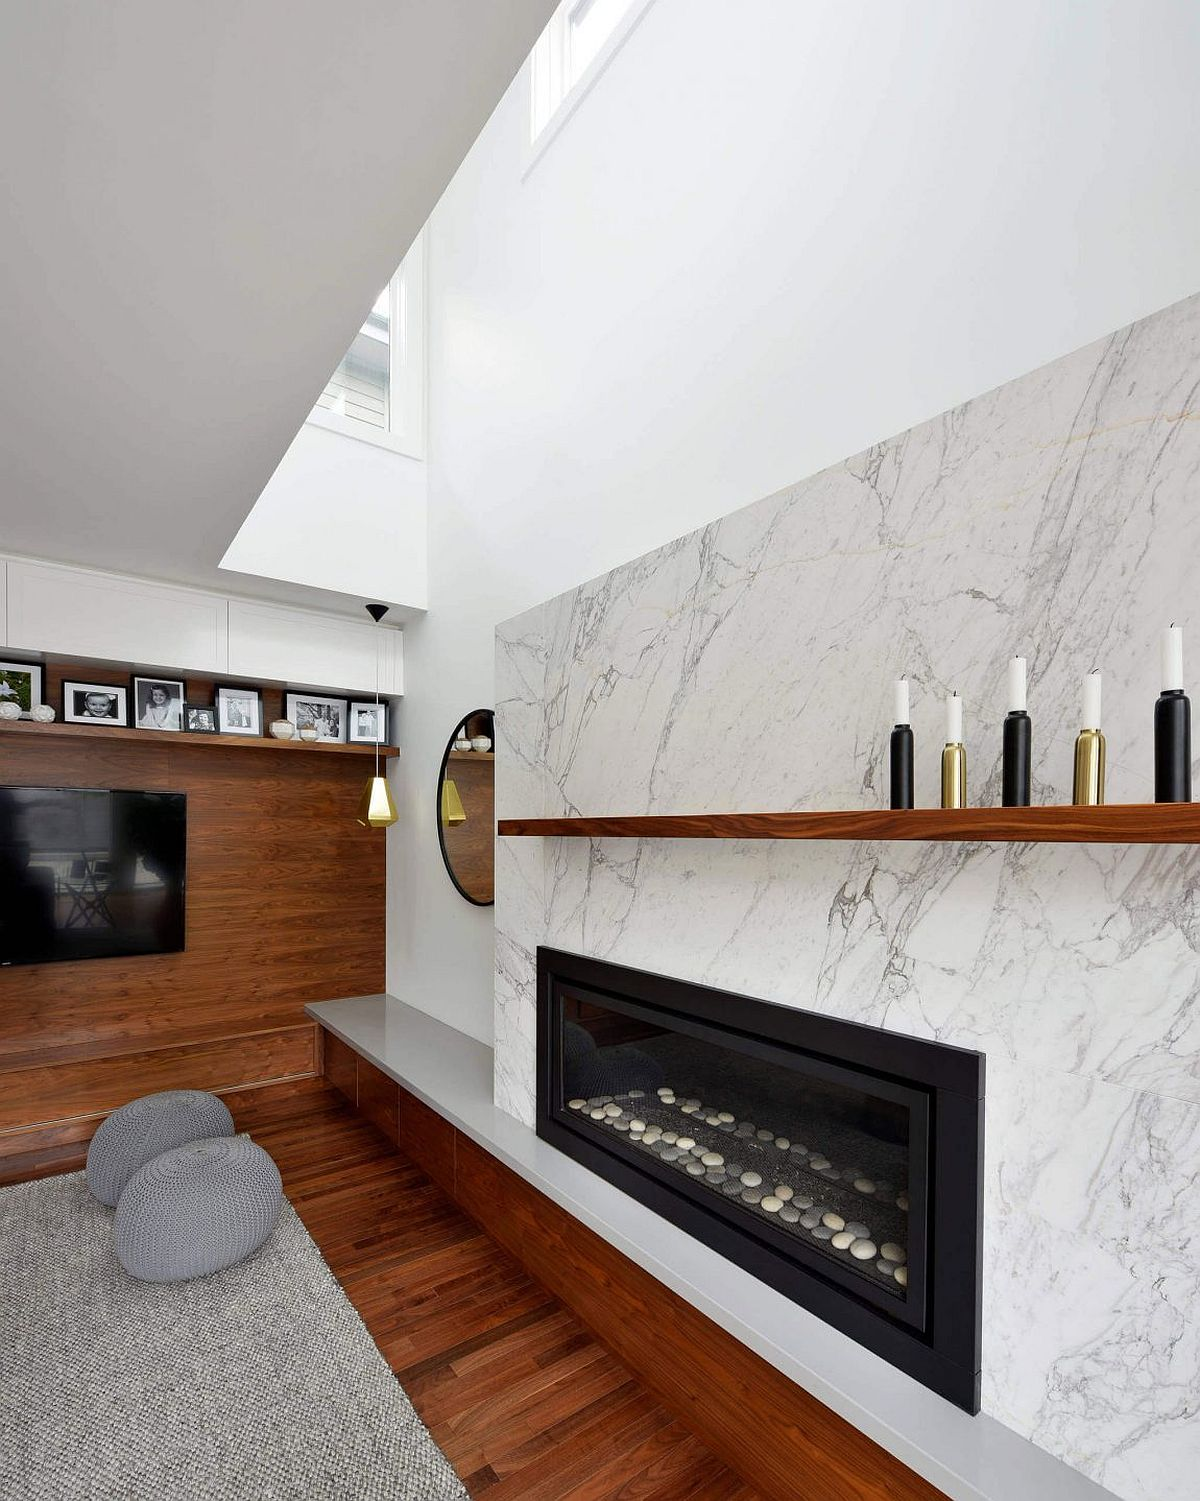 Marble and wood present contrasting textures